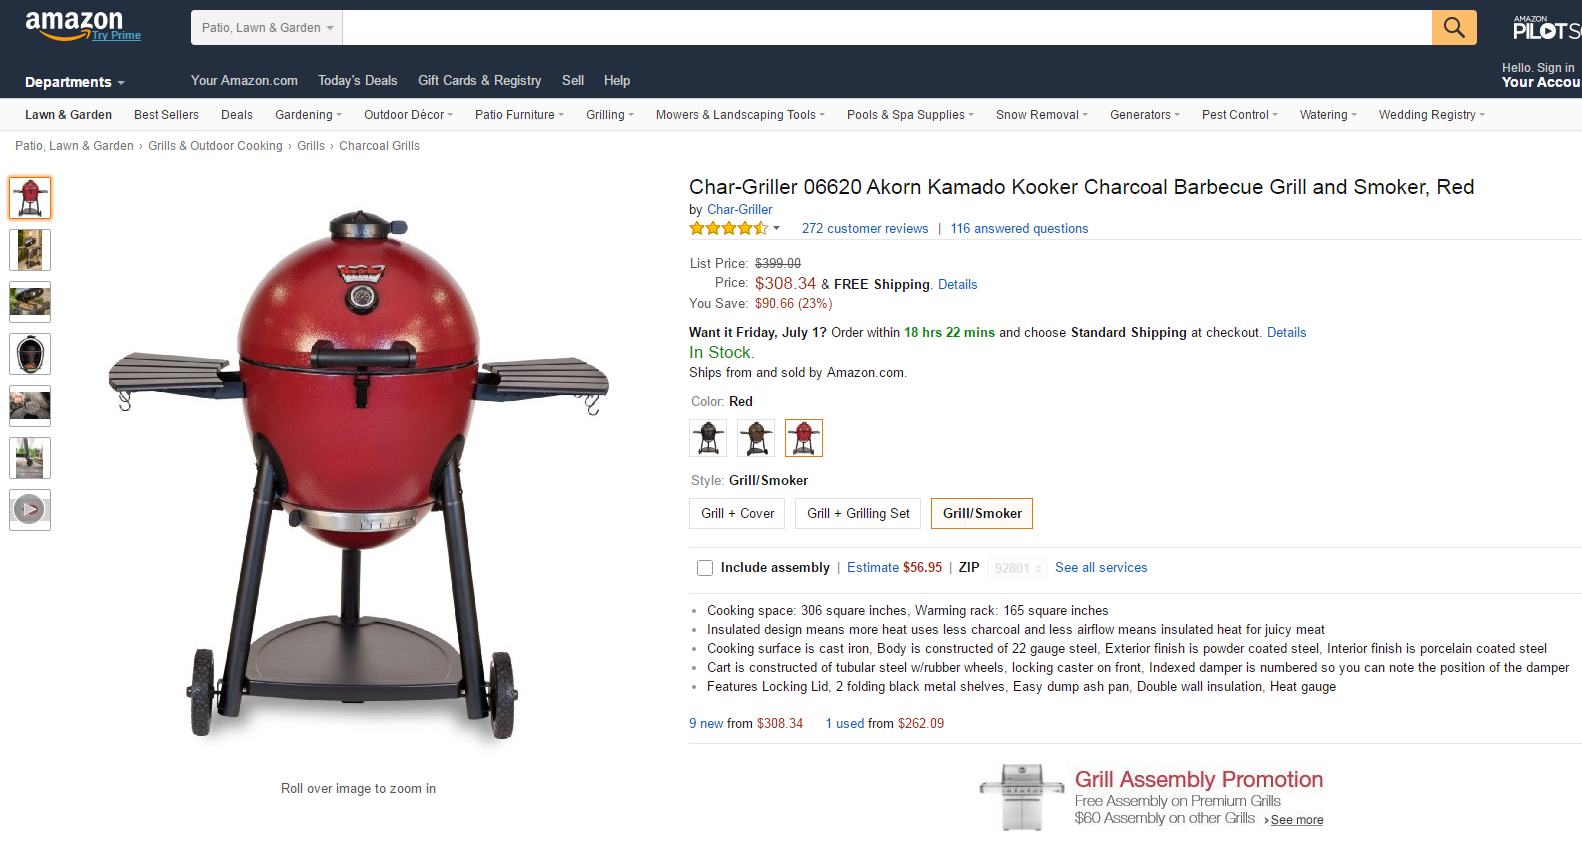 Dealership Customer Experience - Amazon Product Page